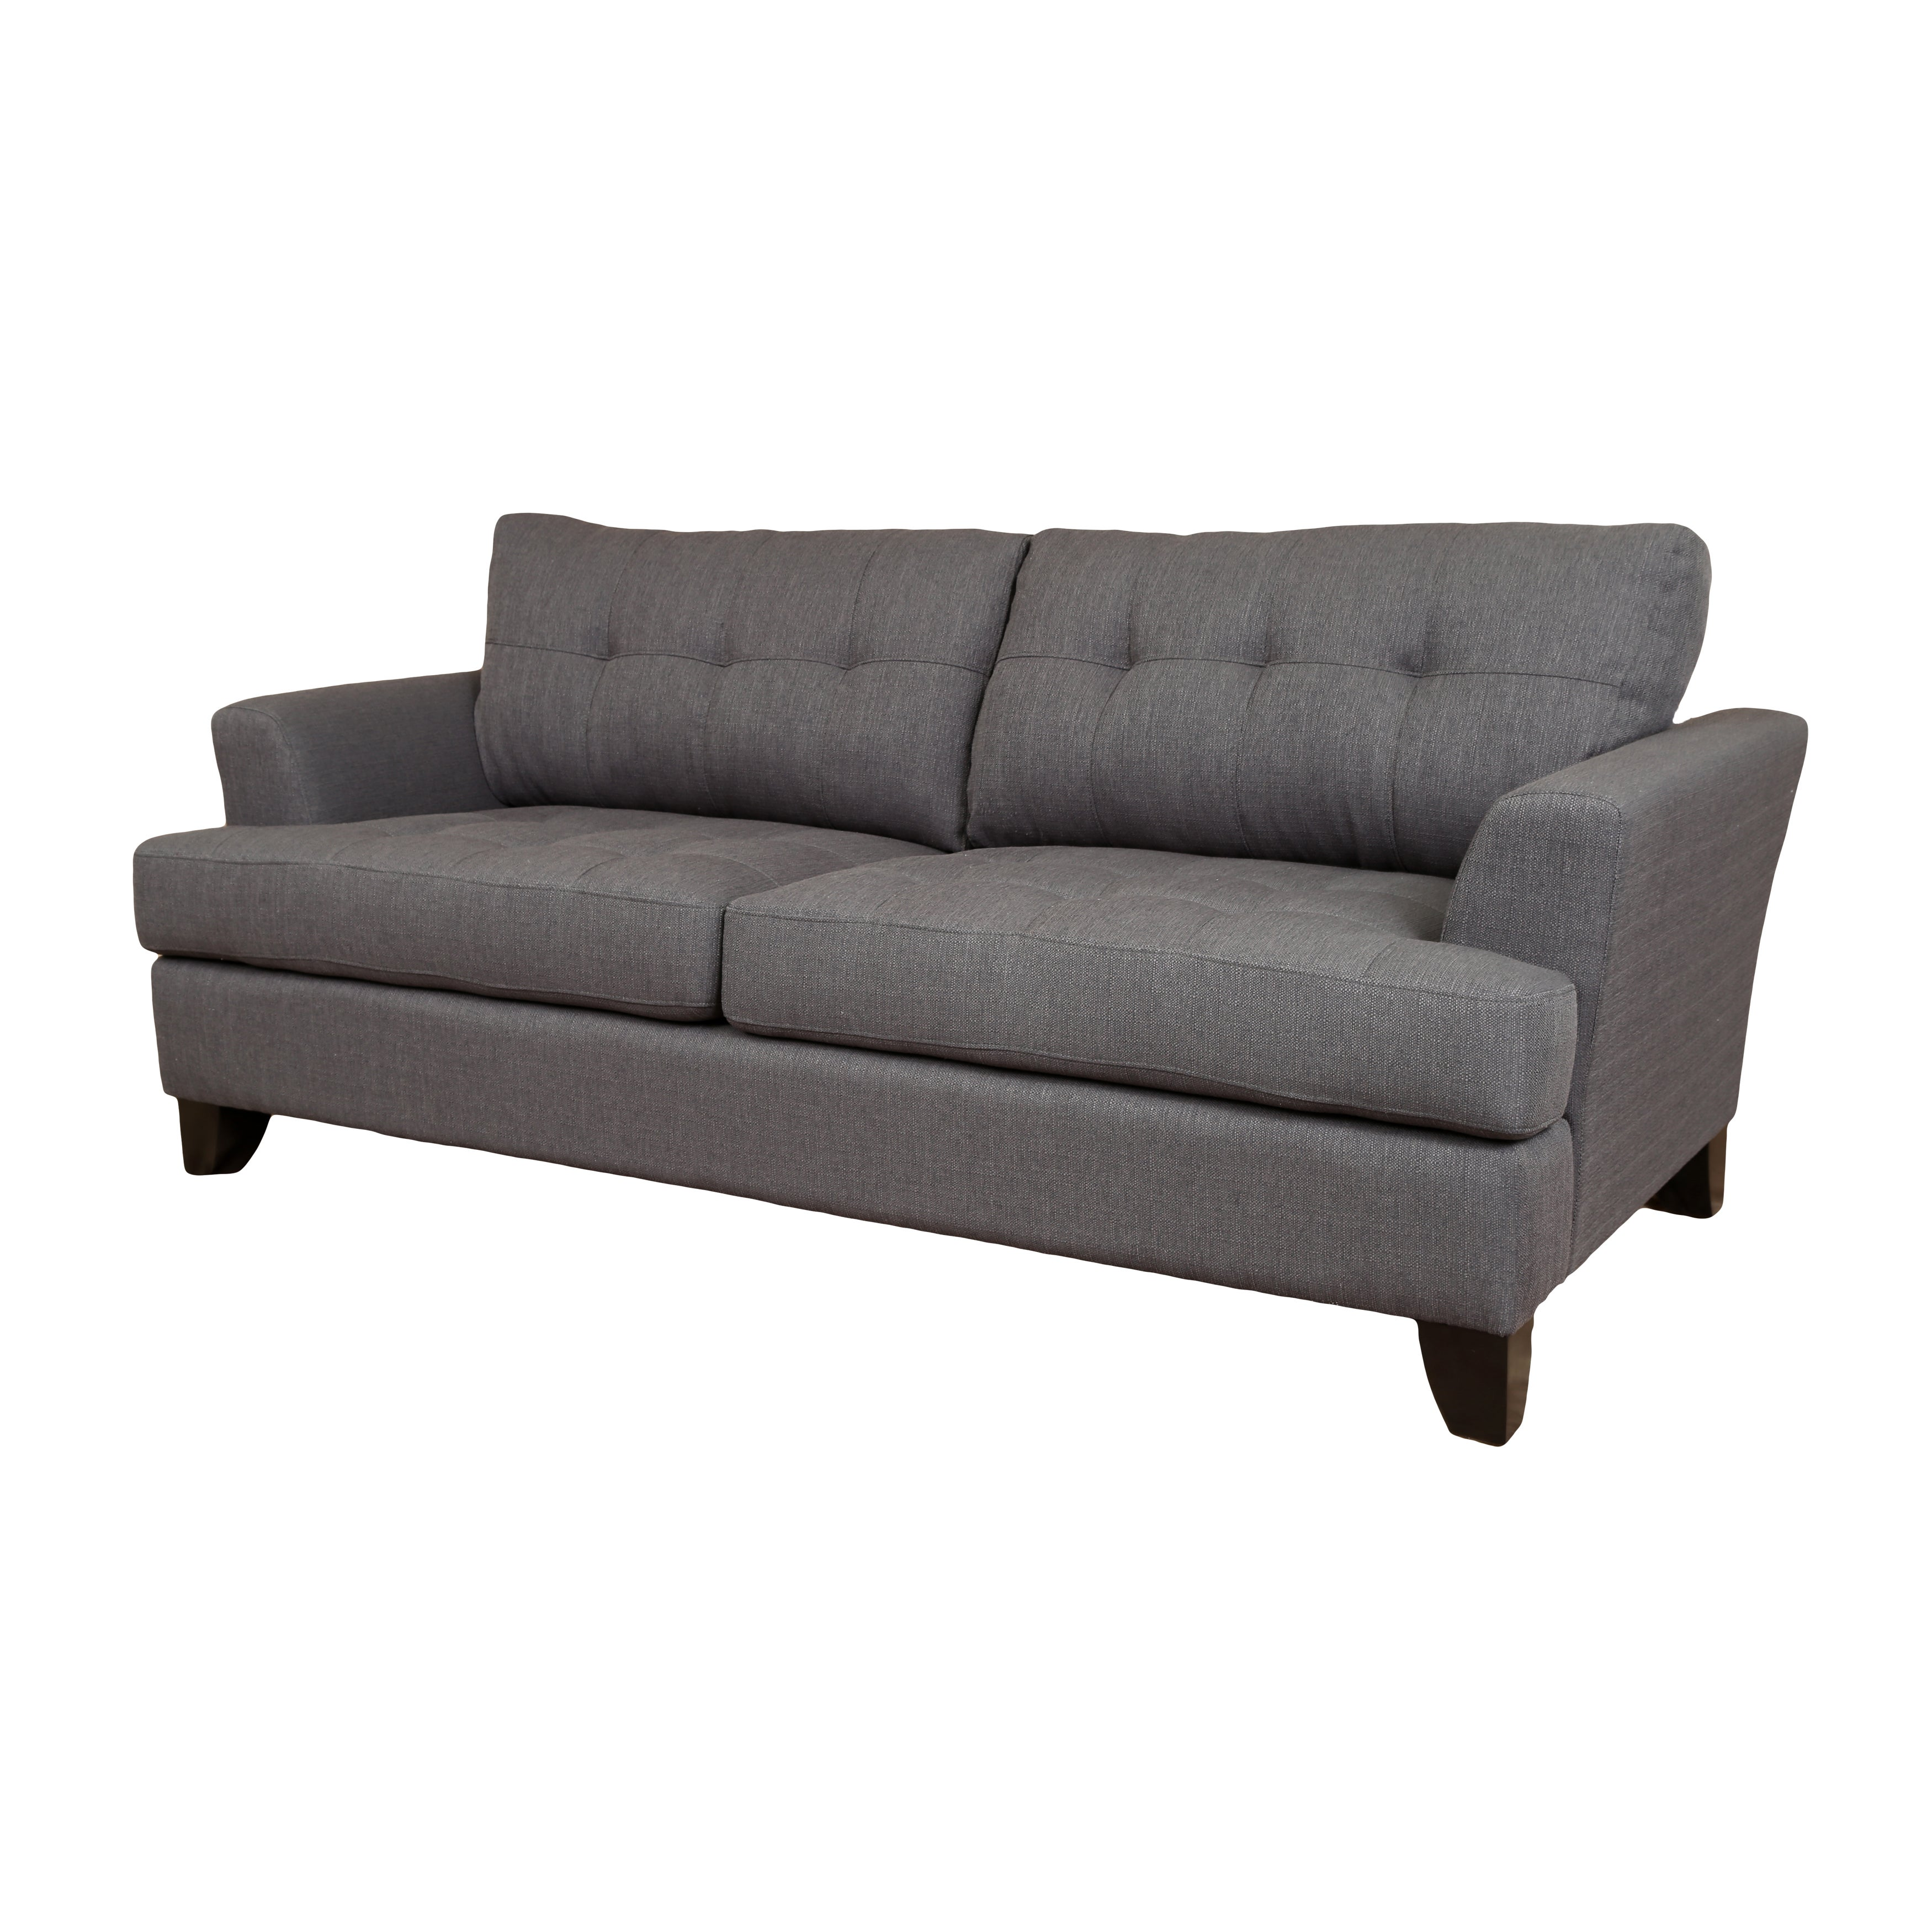 Porter Norwich Contemporary Charcoal Grey Polyester Sofa with Matching  Throw Pillows - 36\